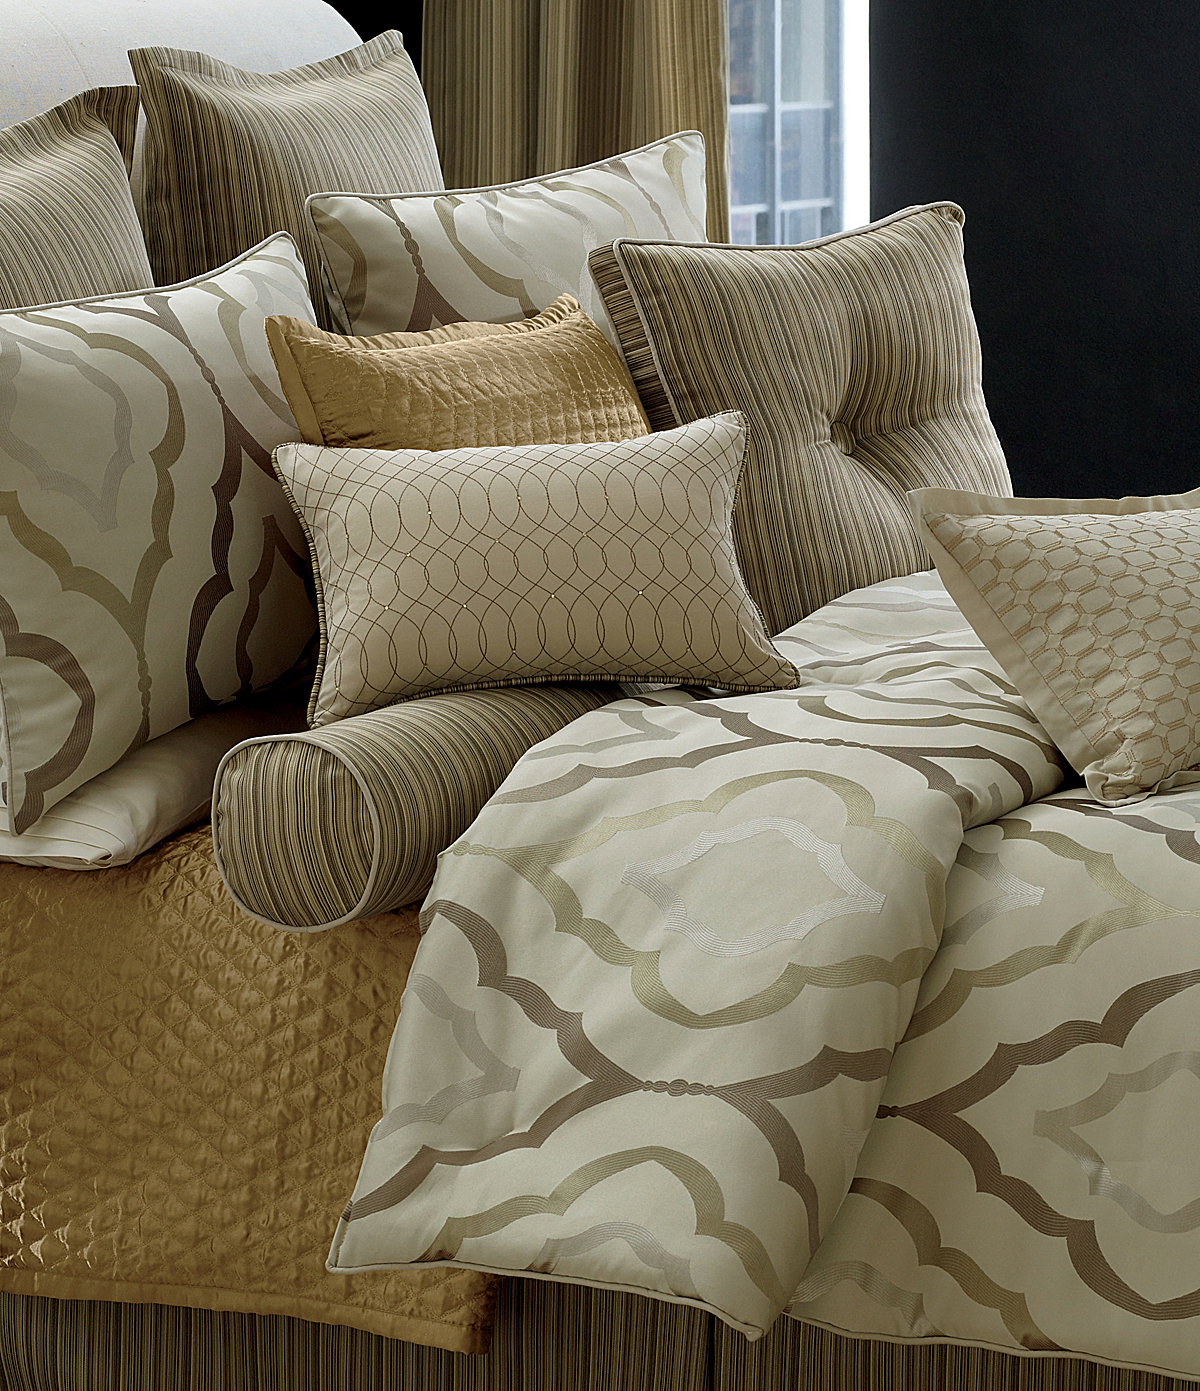 2013 Candice Olson Bedding Collection from Dillard's | Furniture ...